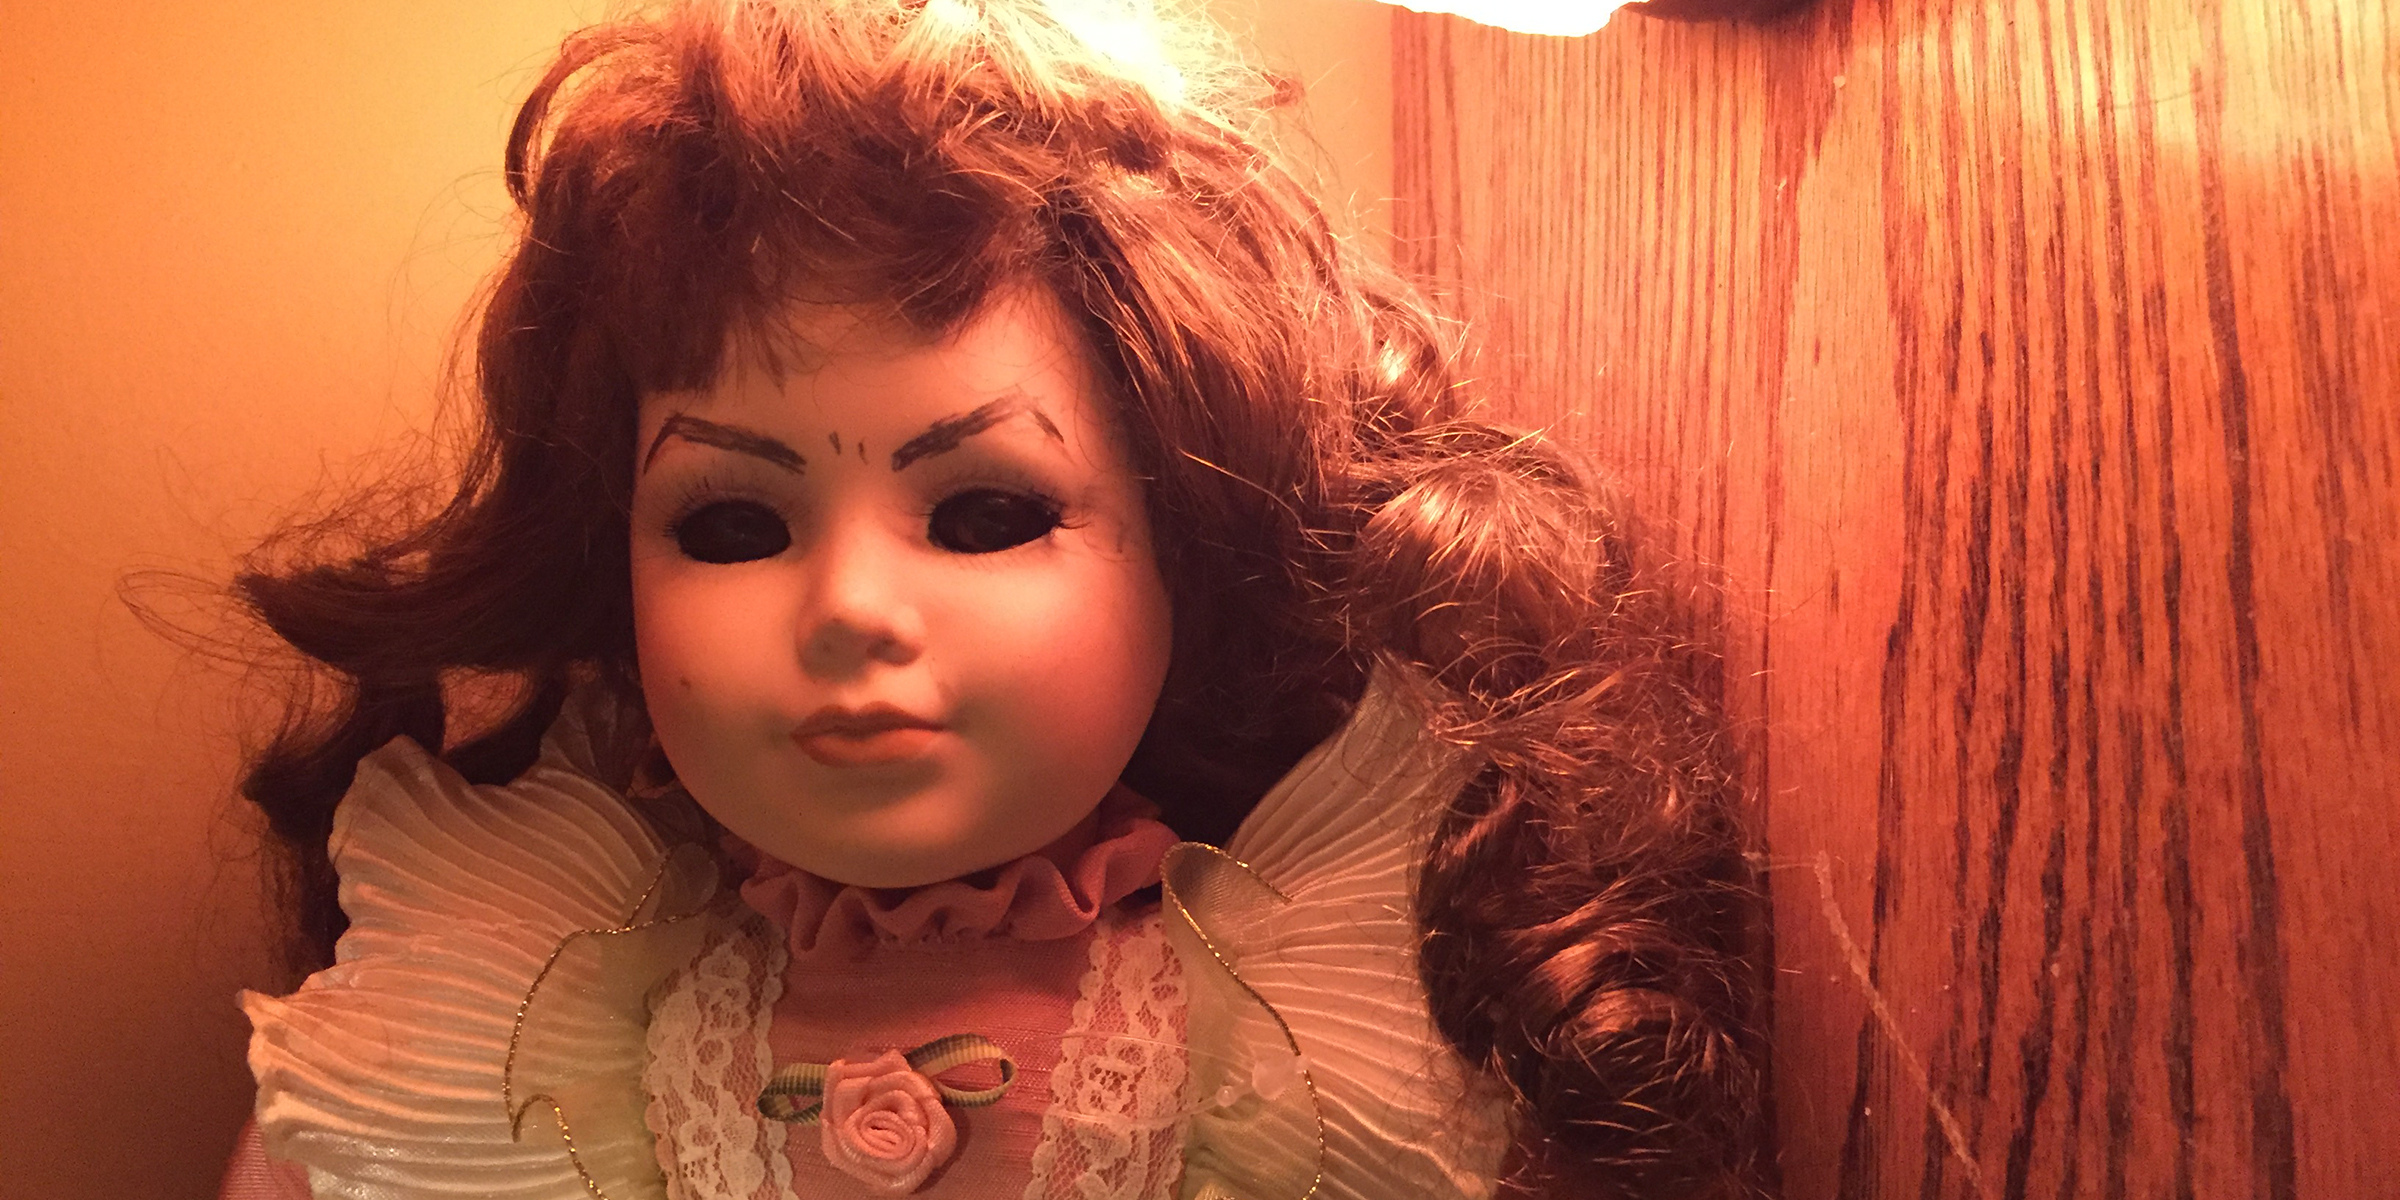 Mom Pranks Kids With Creepy Halloween Doll In The Hall